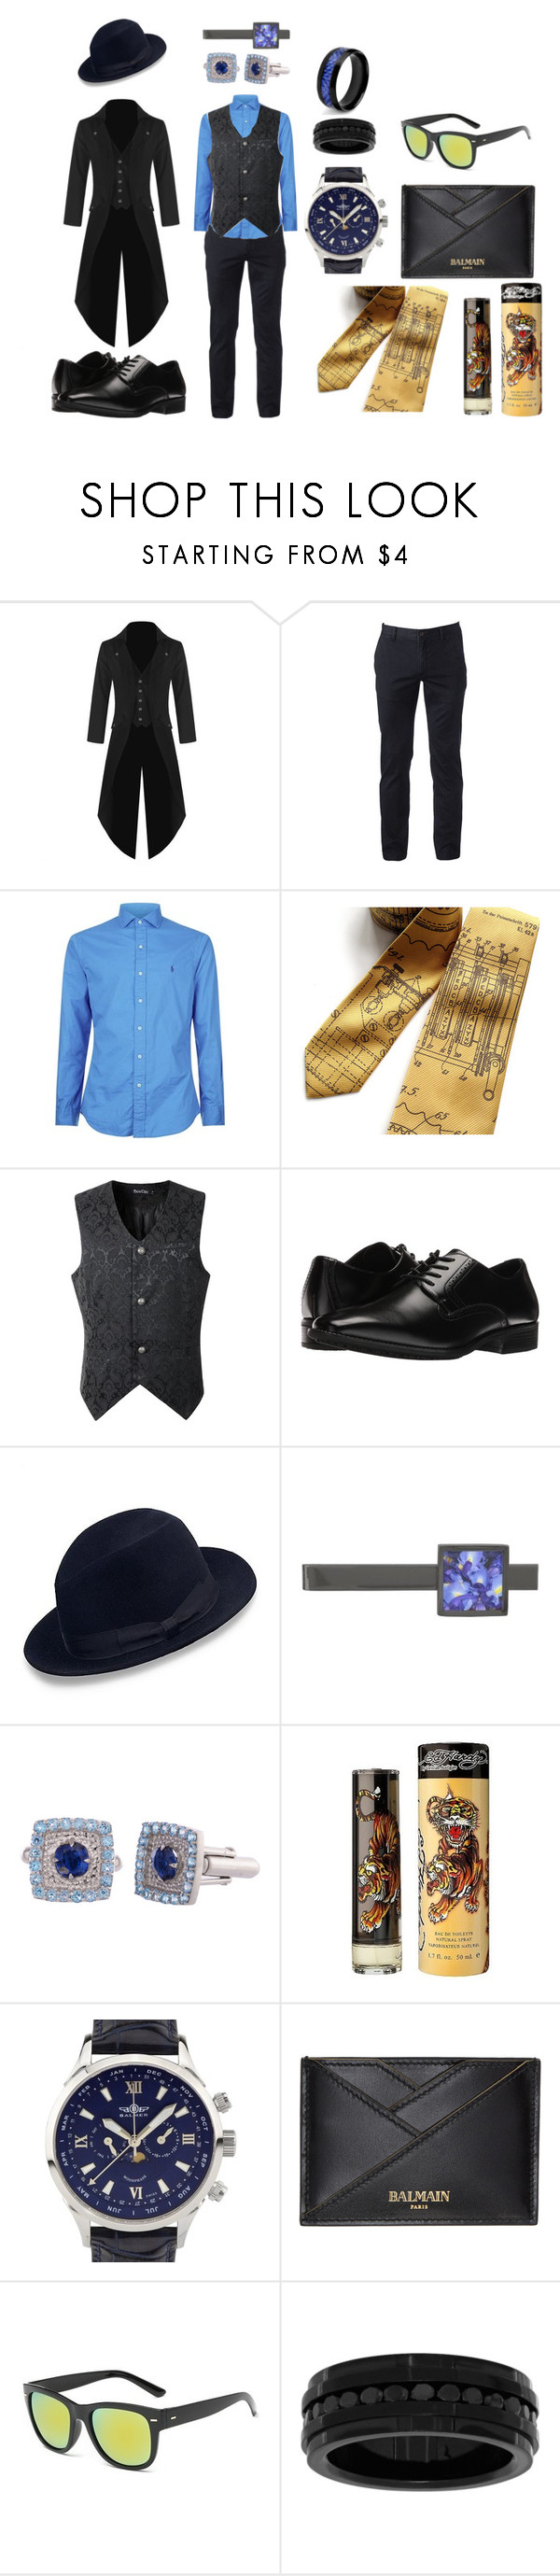 """Edmund Starter"" by quartyque ❤ liked on Polyvore featuring Urban Pipeline, Polo Ralph Lauren, Stacy Adams, Brooks Brothers, Ed Hardy, Balmer, Balmain, Lord & Taylor and West Coast Jewelry"